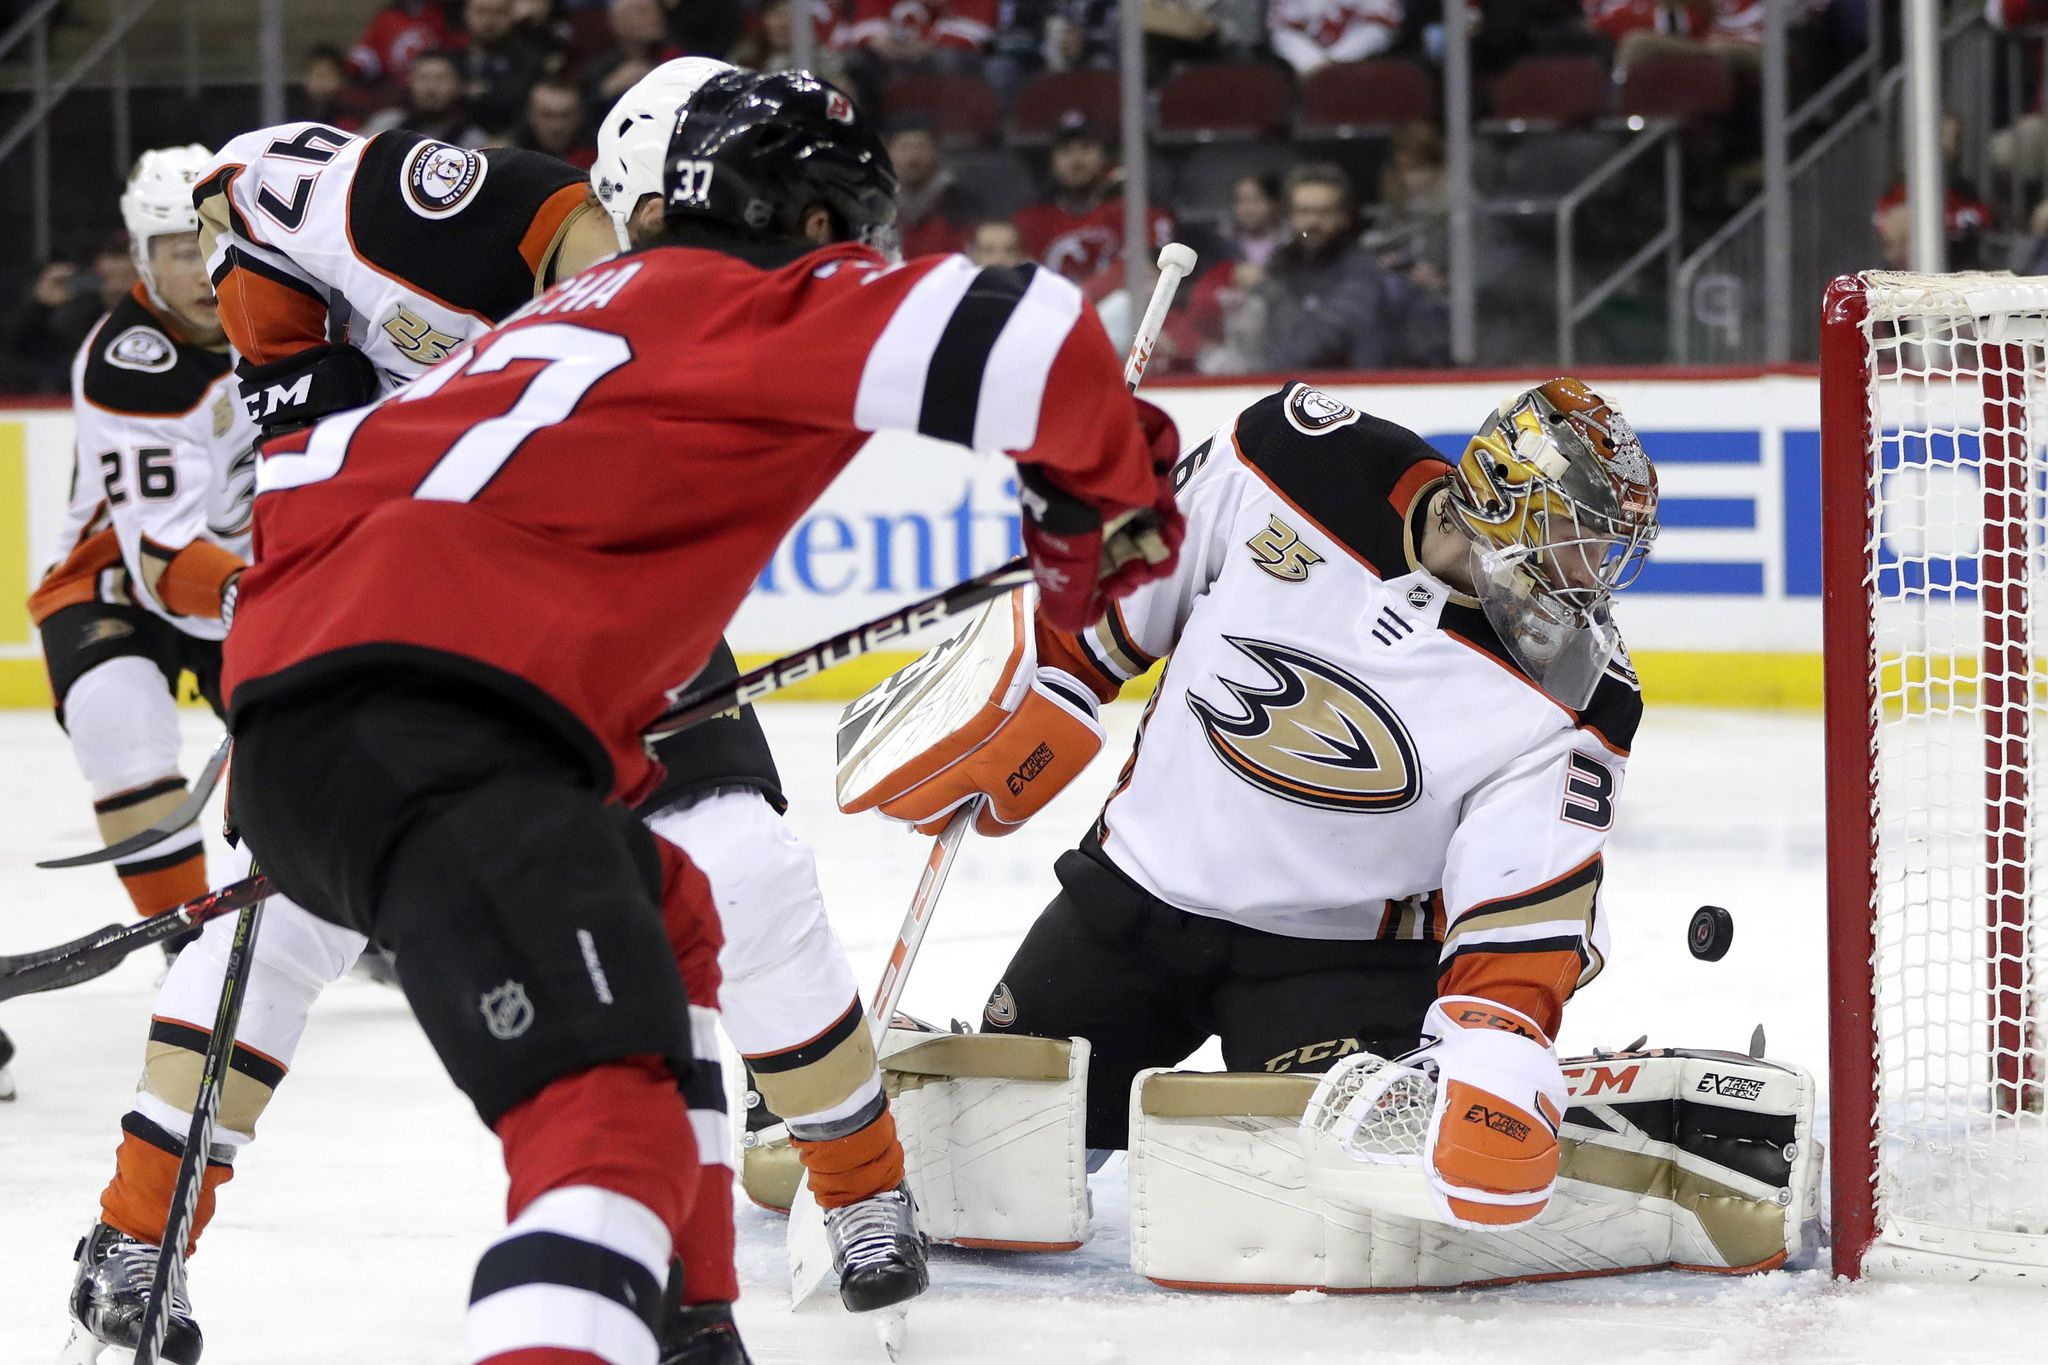 Ducks_devils_hockey_73053_s2048x1365